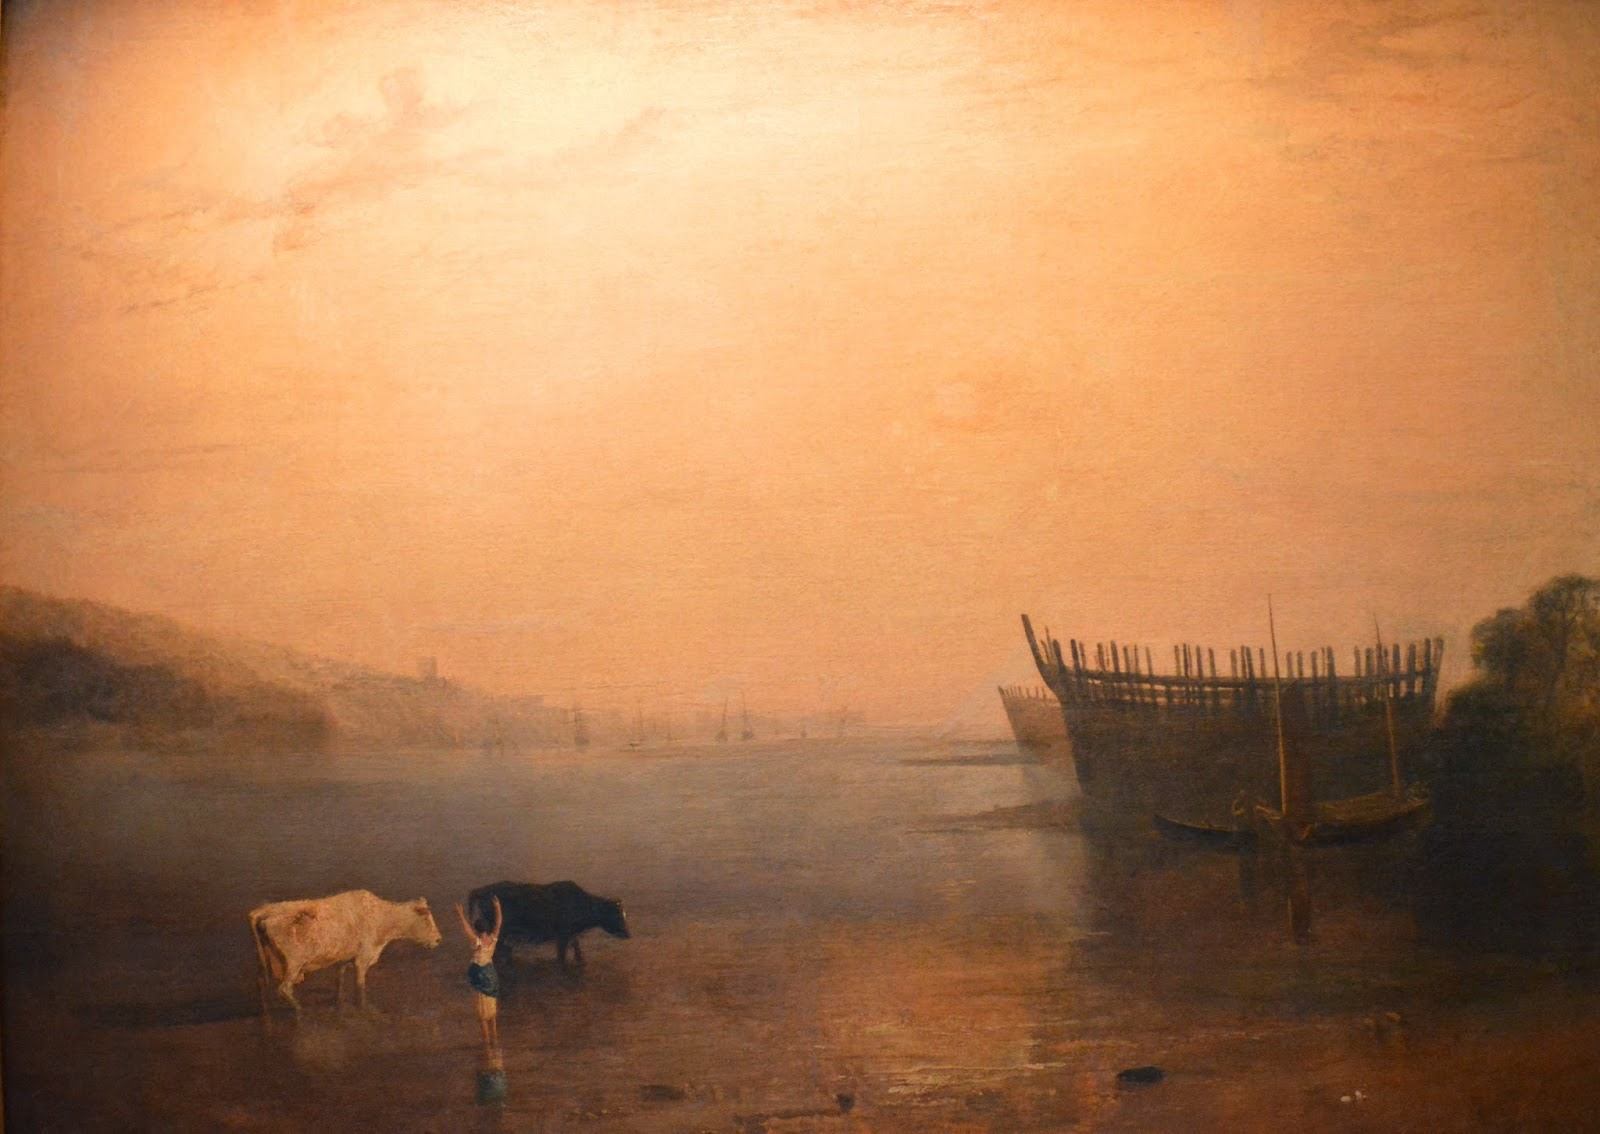 Turner, art, painting, mist, colours, sunset, rural, cows, Petworth House and Garden, inside, interior, visit, review, National Trust, history, UK, England, Sussex, historical property, old building, culture, day trip, photo, photograph, Percy Family, Elizabeth Seymour, Duchess of Somerset, Earl of Egremount, Wyndham